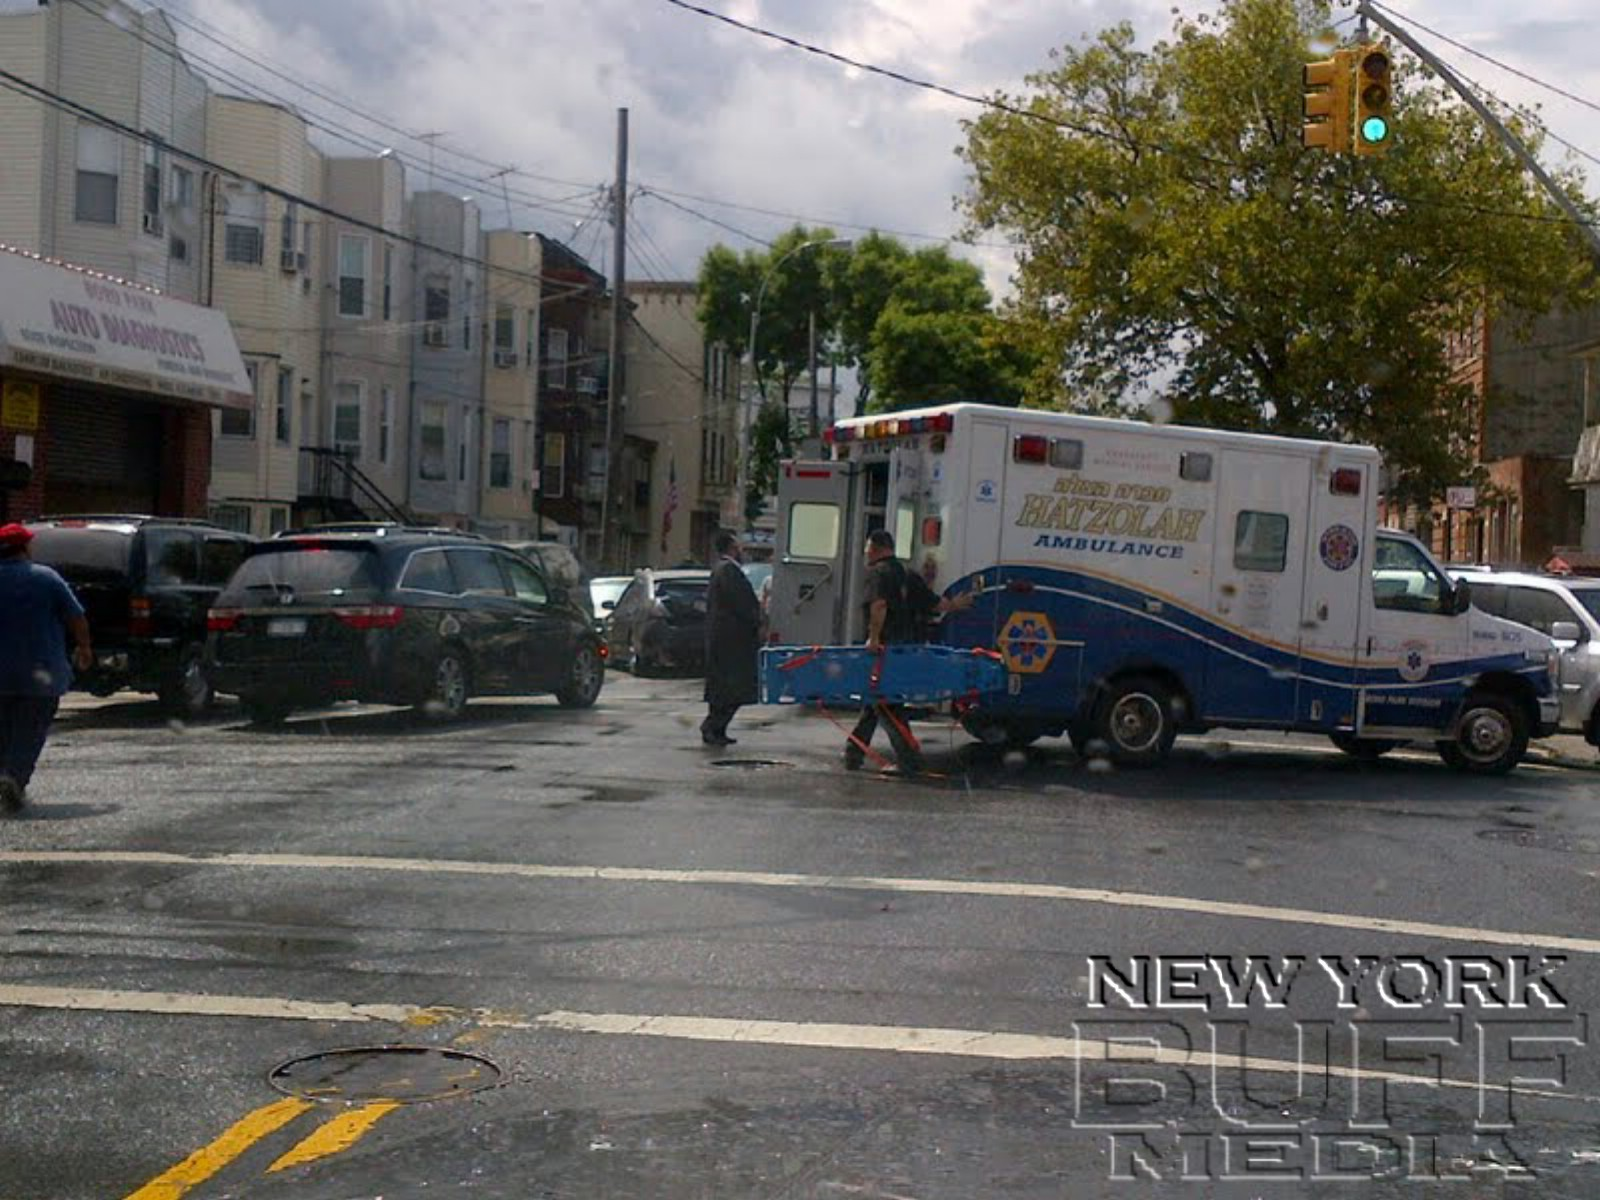 New York Buff Media Two Injured In Brooklyn Accident